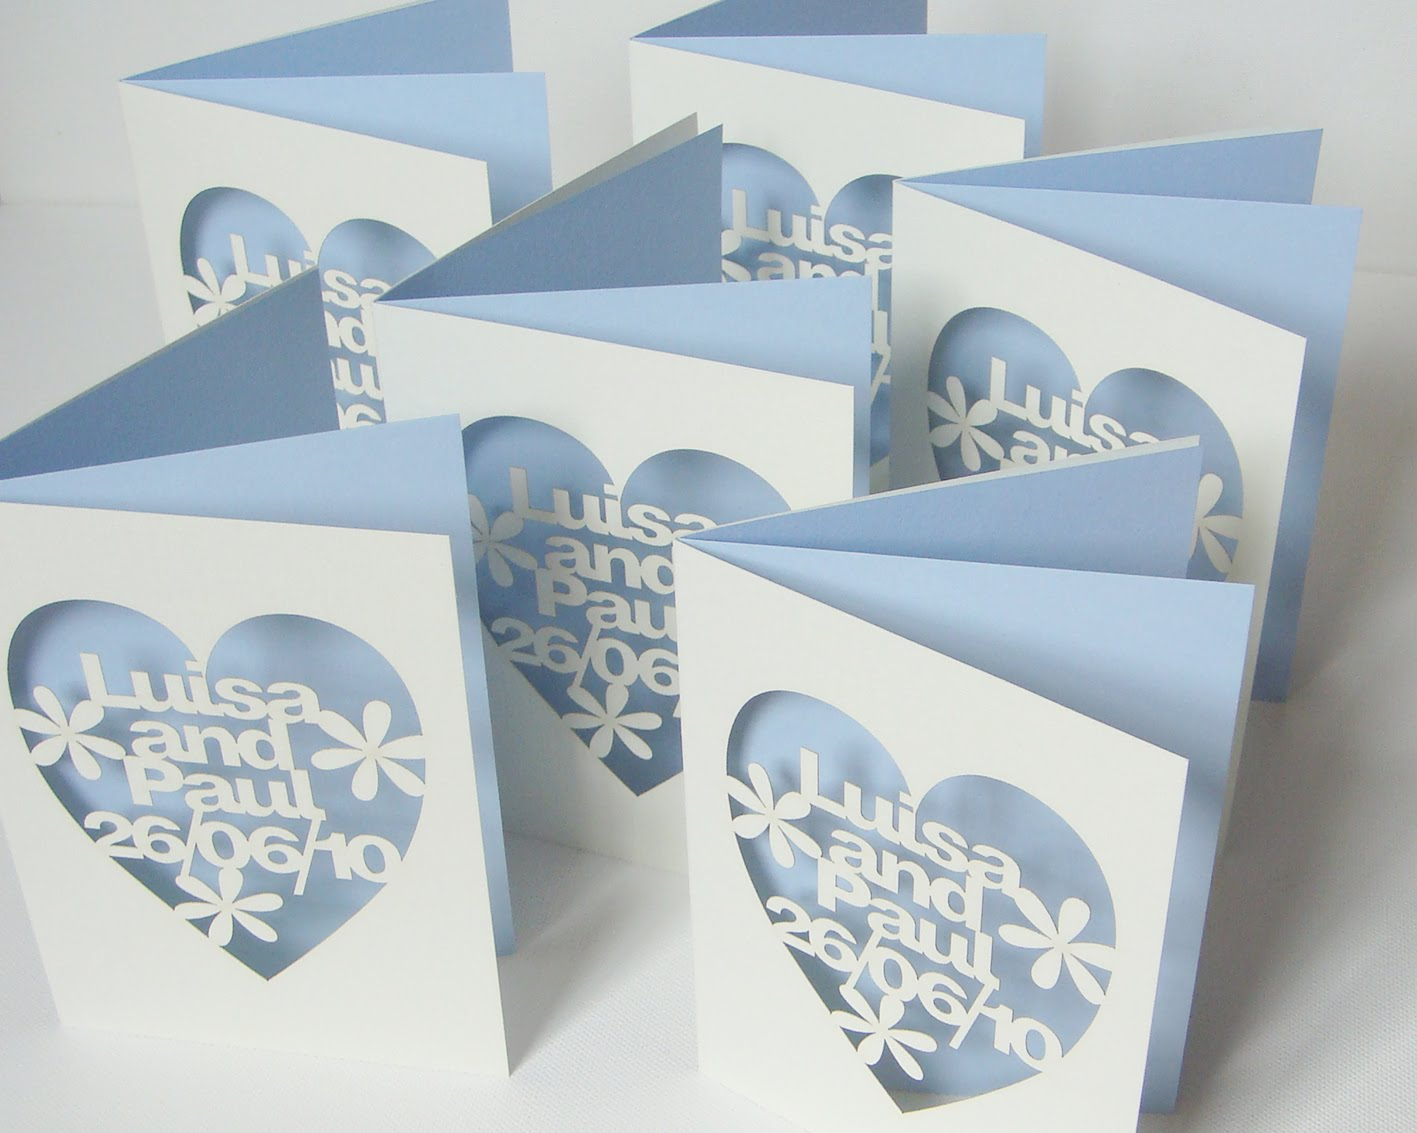 Back On The Wedding Stationery But For Another Happy Couple Instead Of Us I Have Loved Making These Pale Cream And Ice Blue Personalised Cut Out Cards